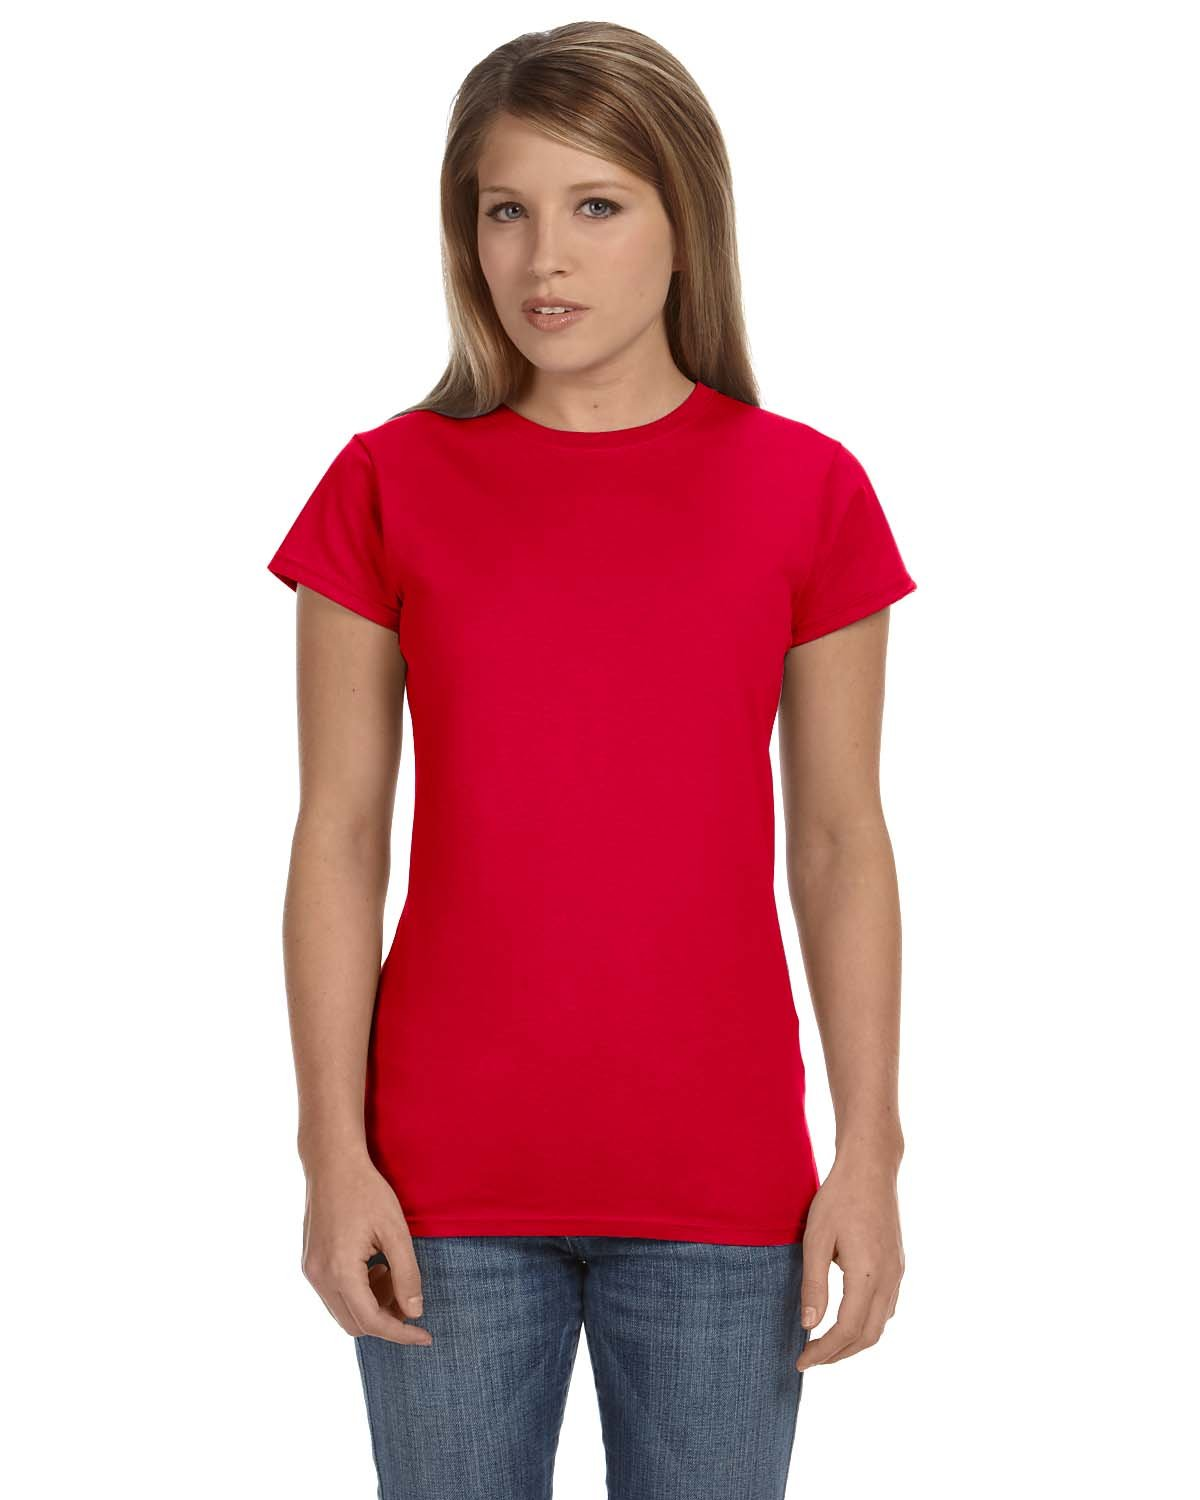 Gildan Ladies' Softstyle® 4.5 oz Fitted T-Shirt CHERRY RED